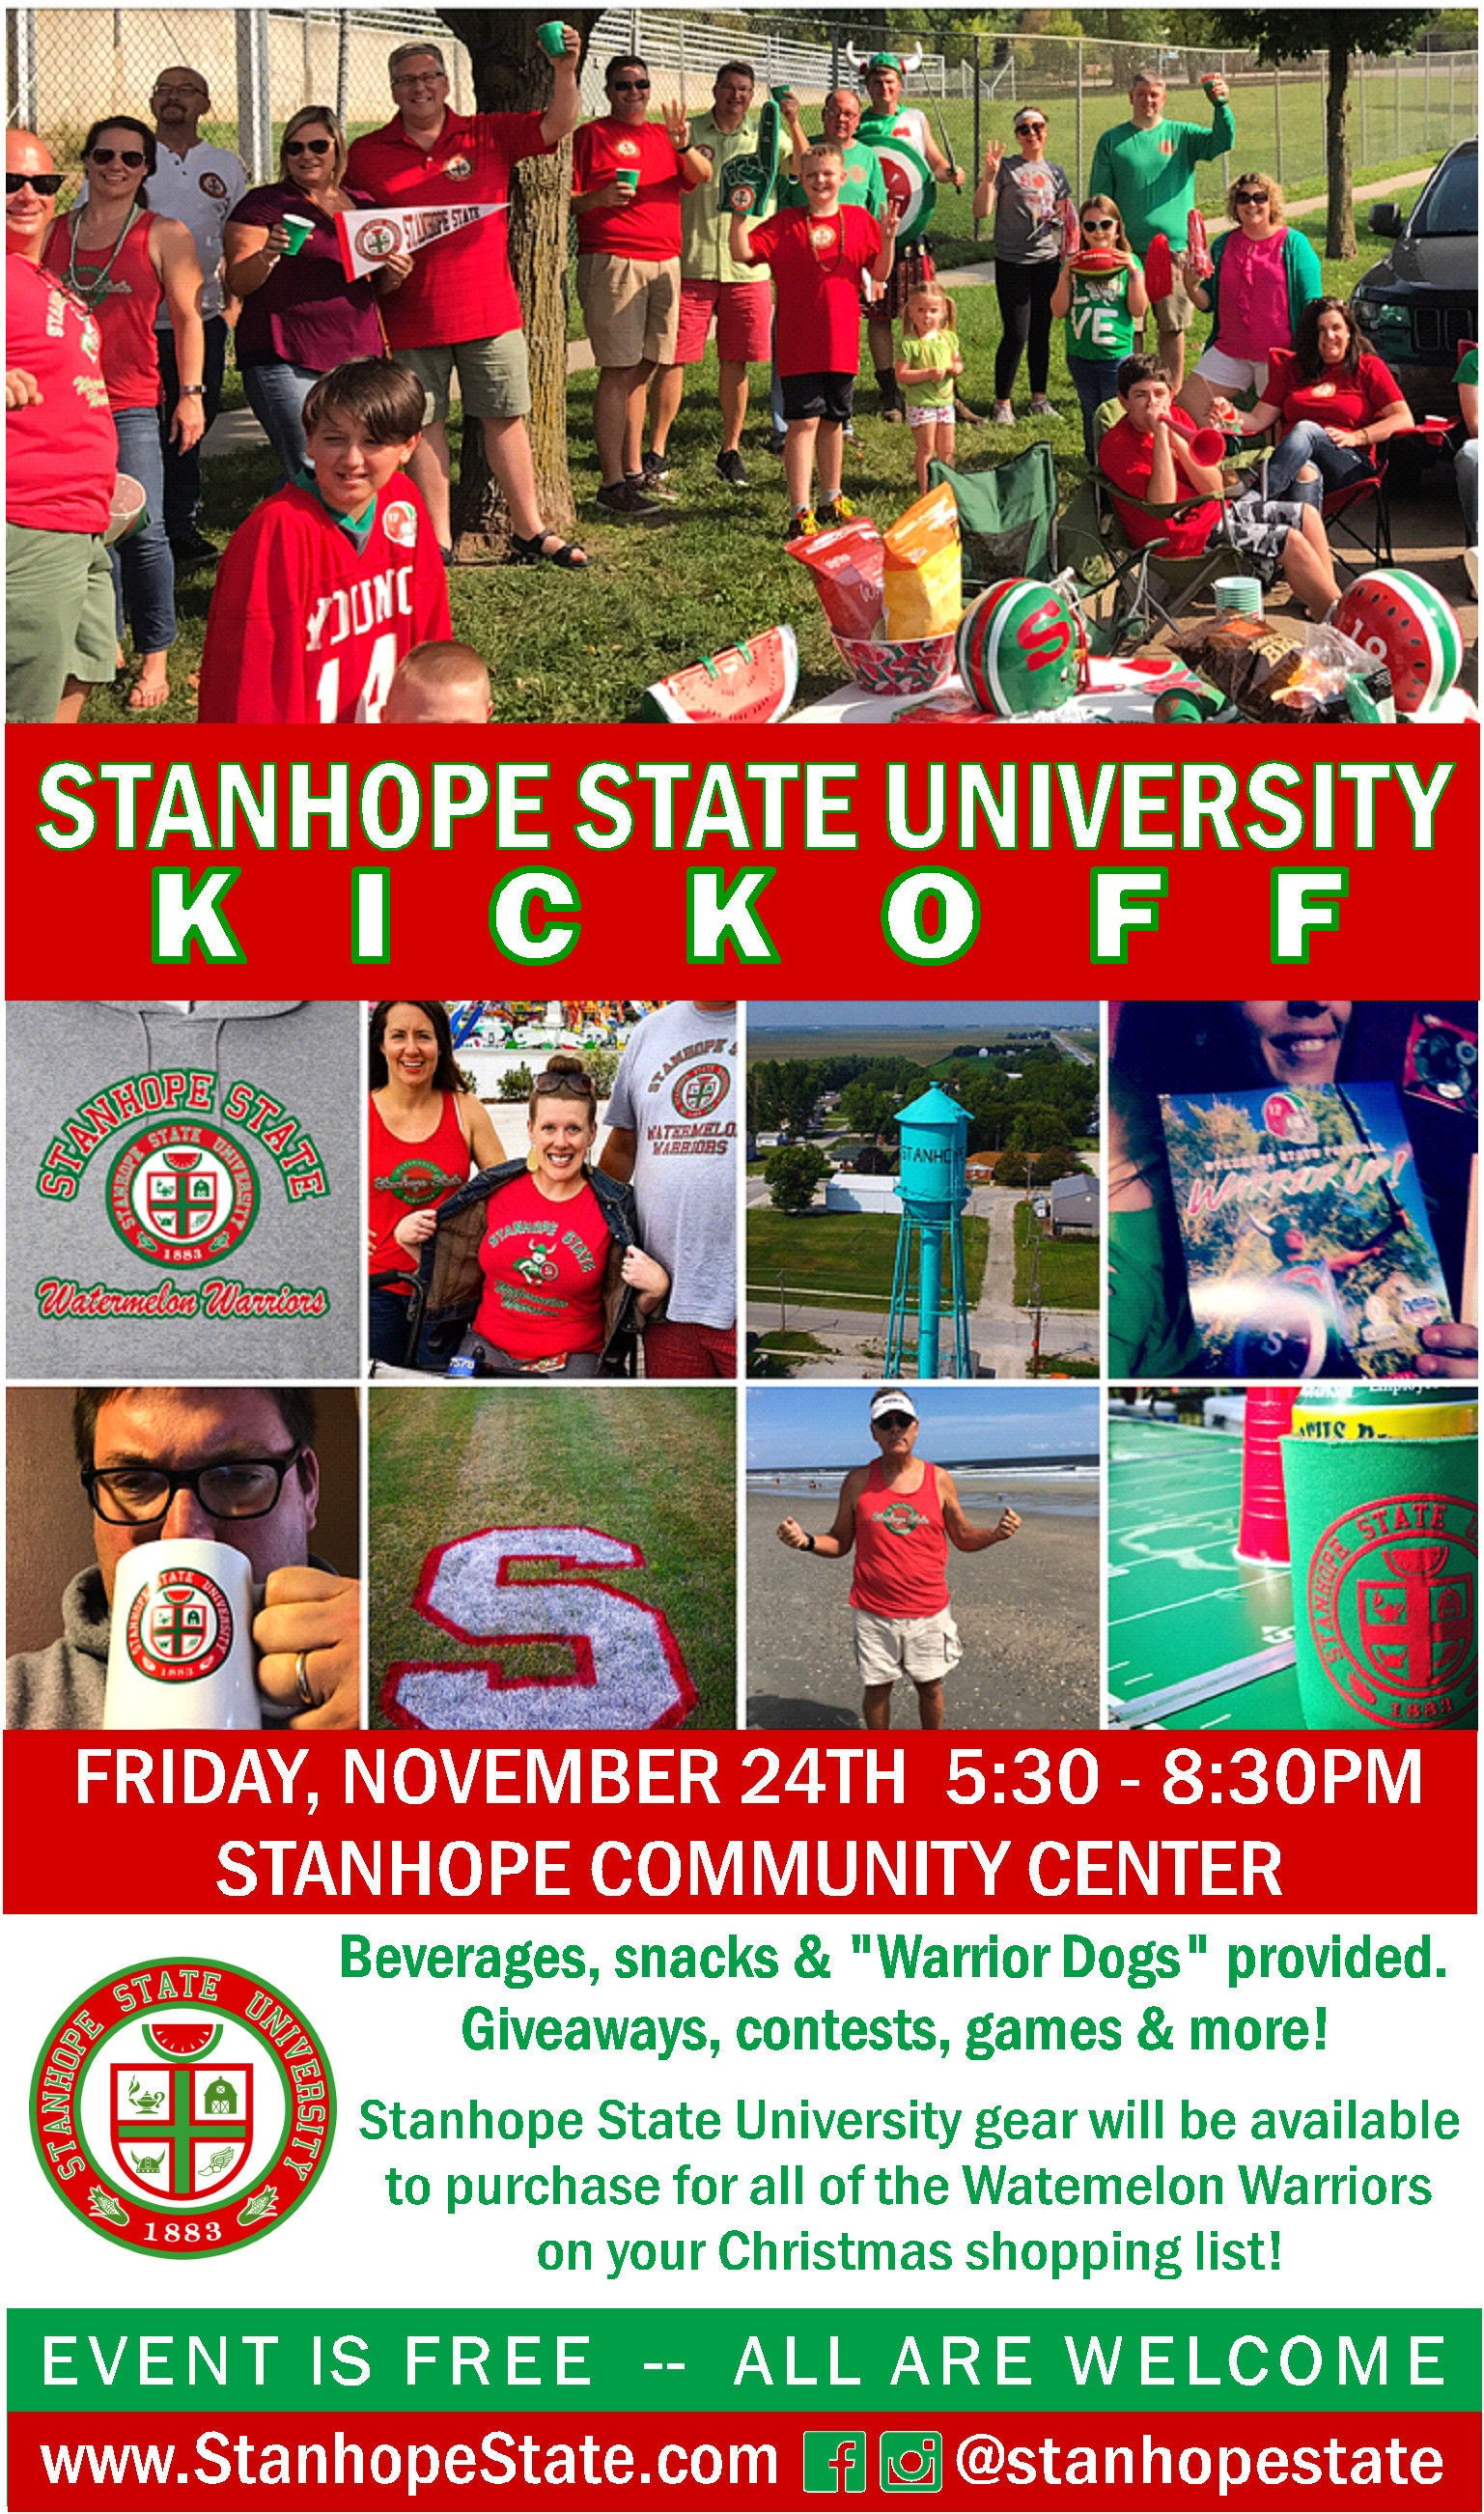 Join us on Friday, November 24th in Stanhope!